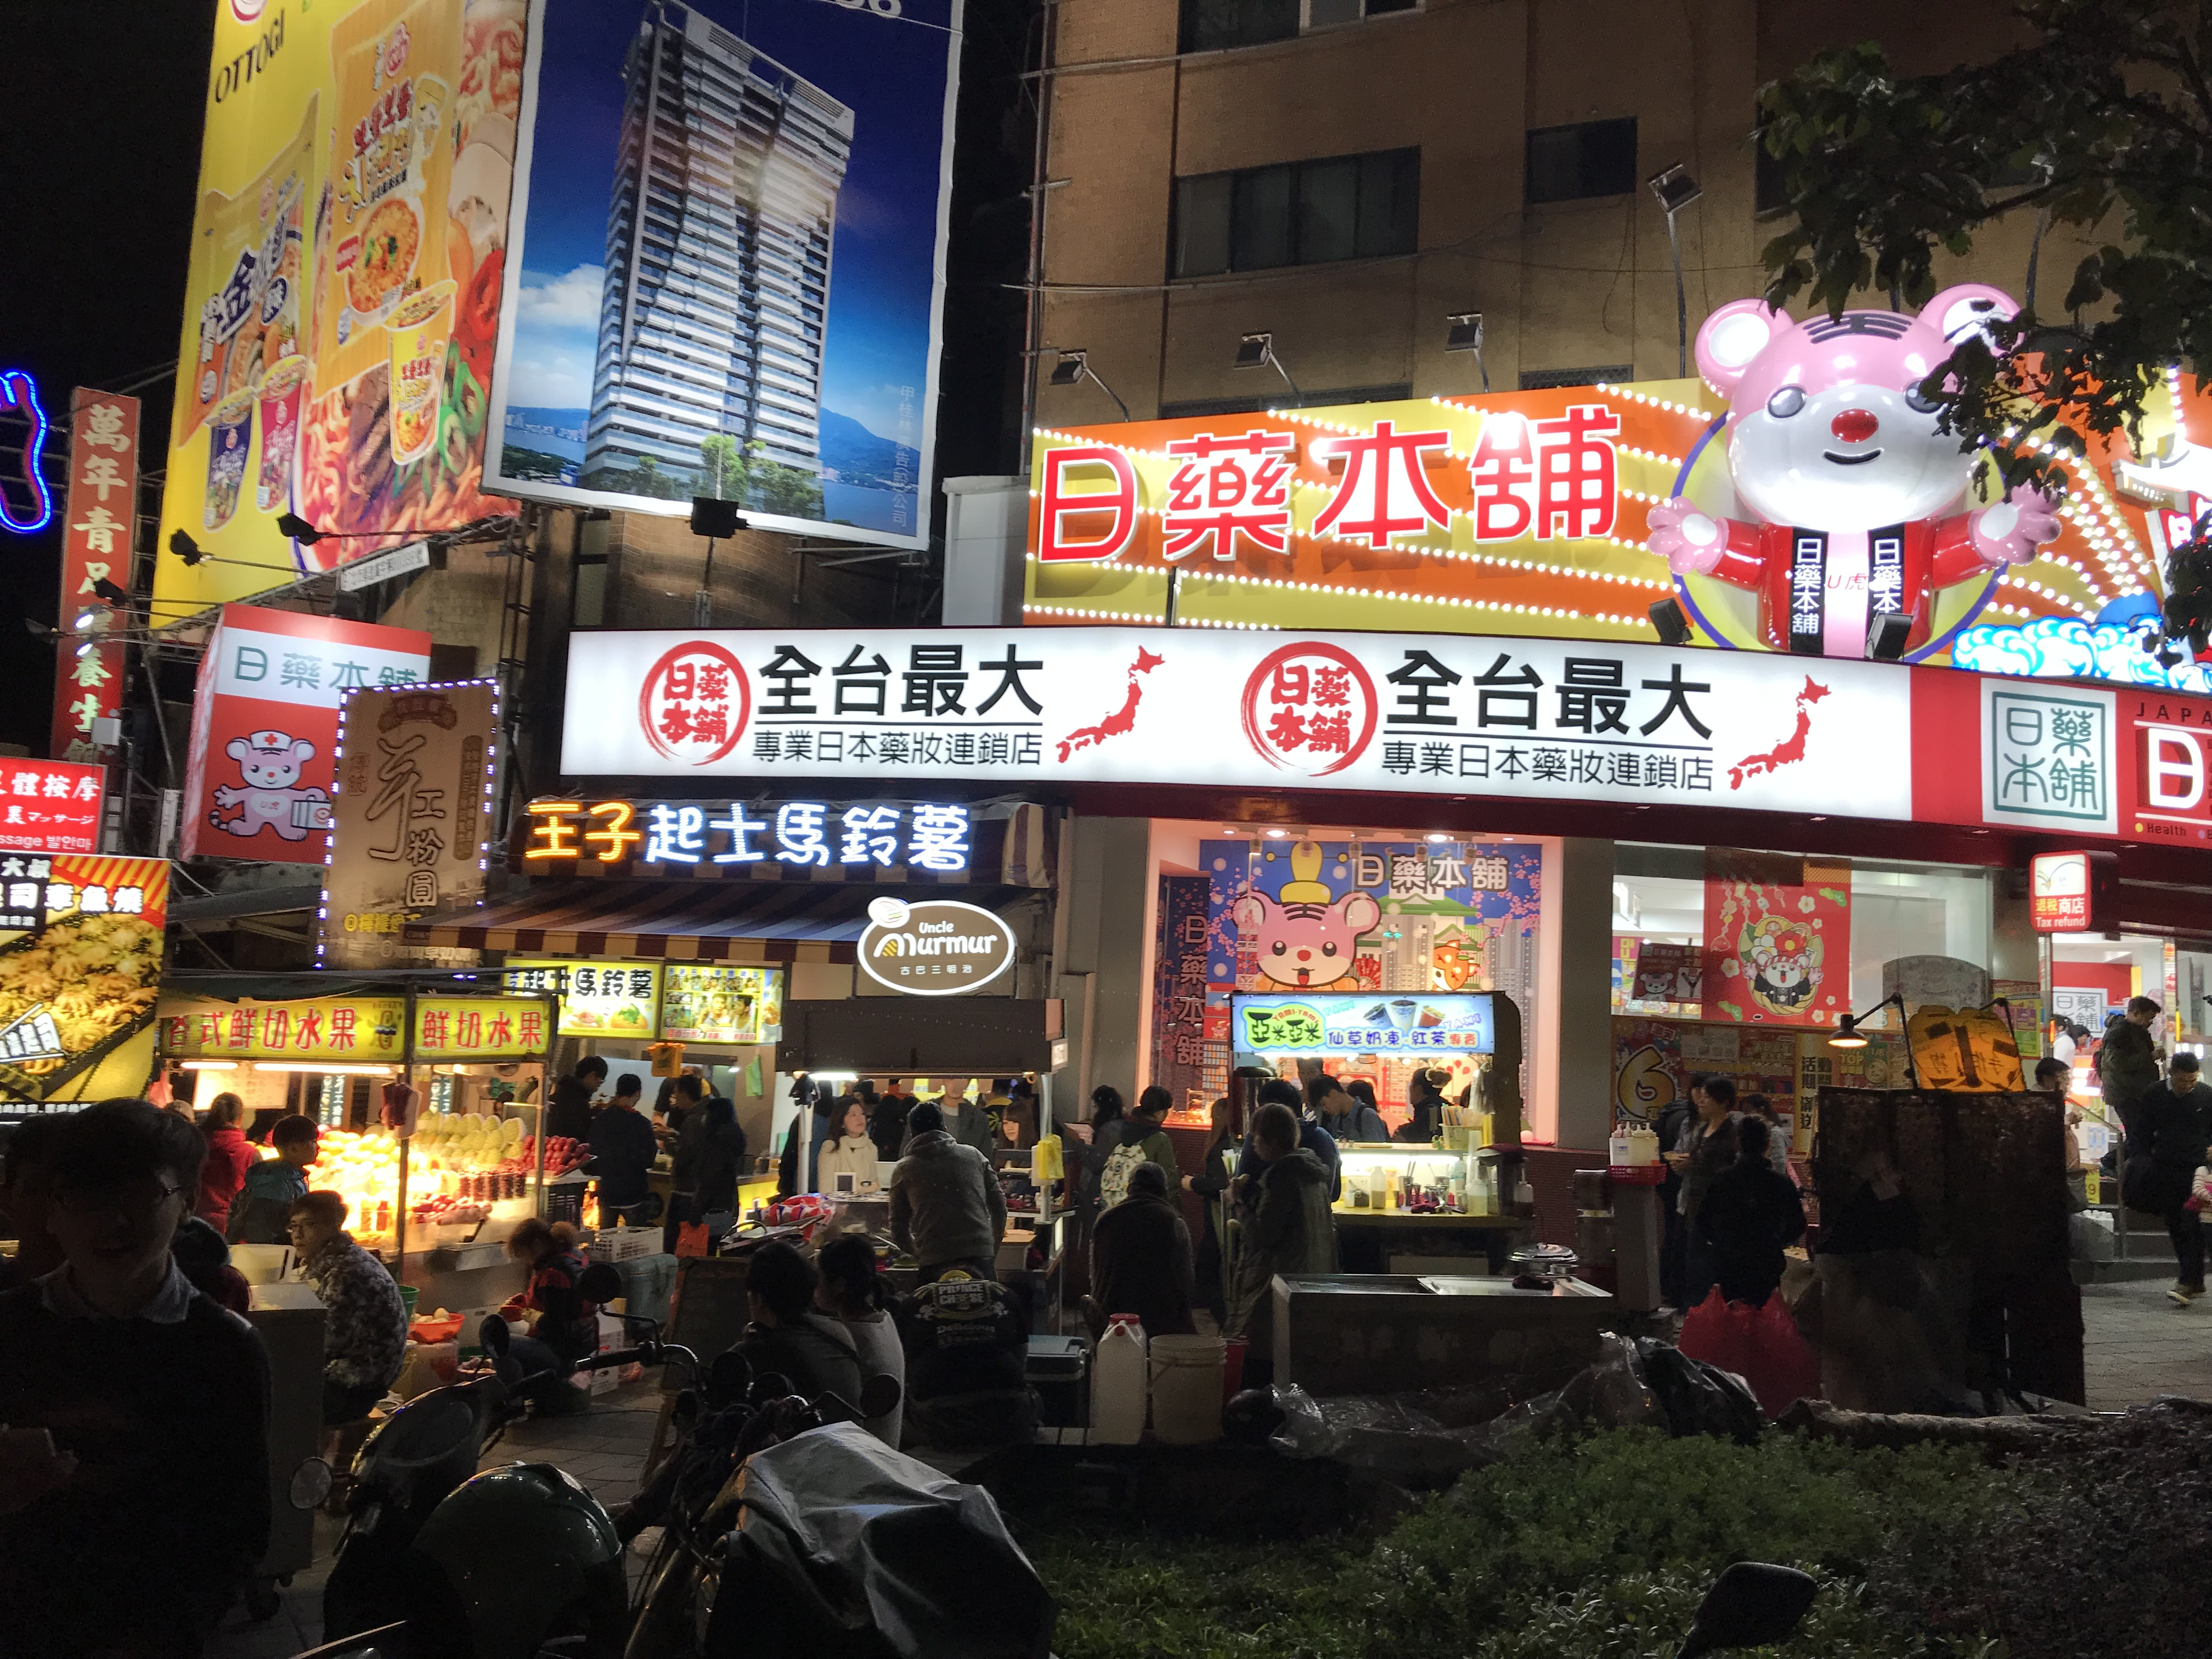 START. Here's the start of the famous Shi Lin Night Market. It stretches along the road with street vendors offering delicious food and Taiwanese merchandise.